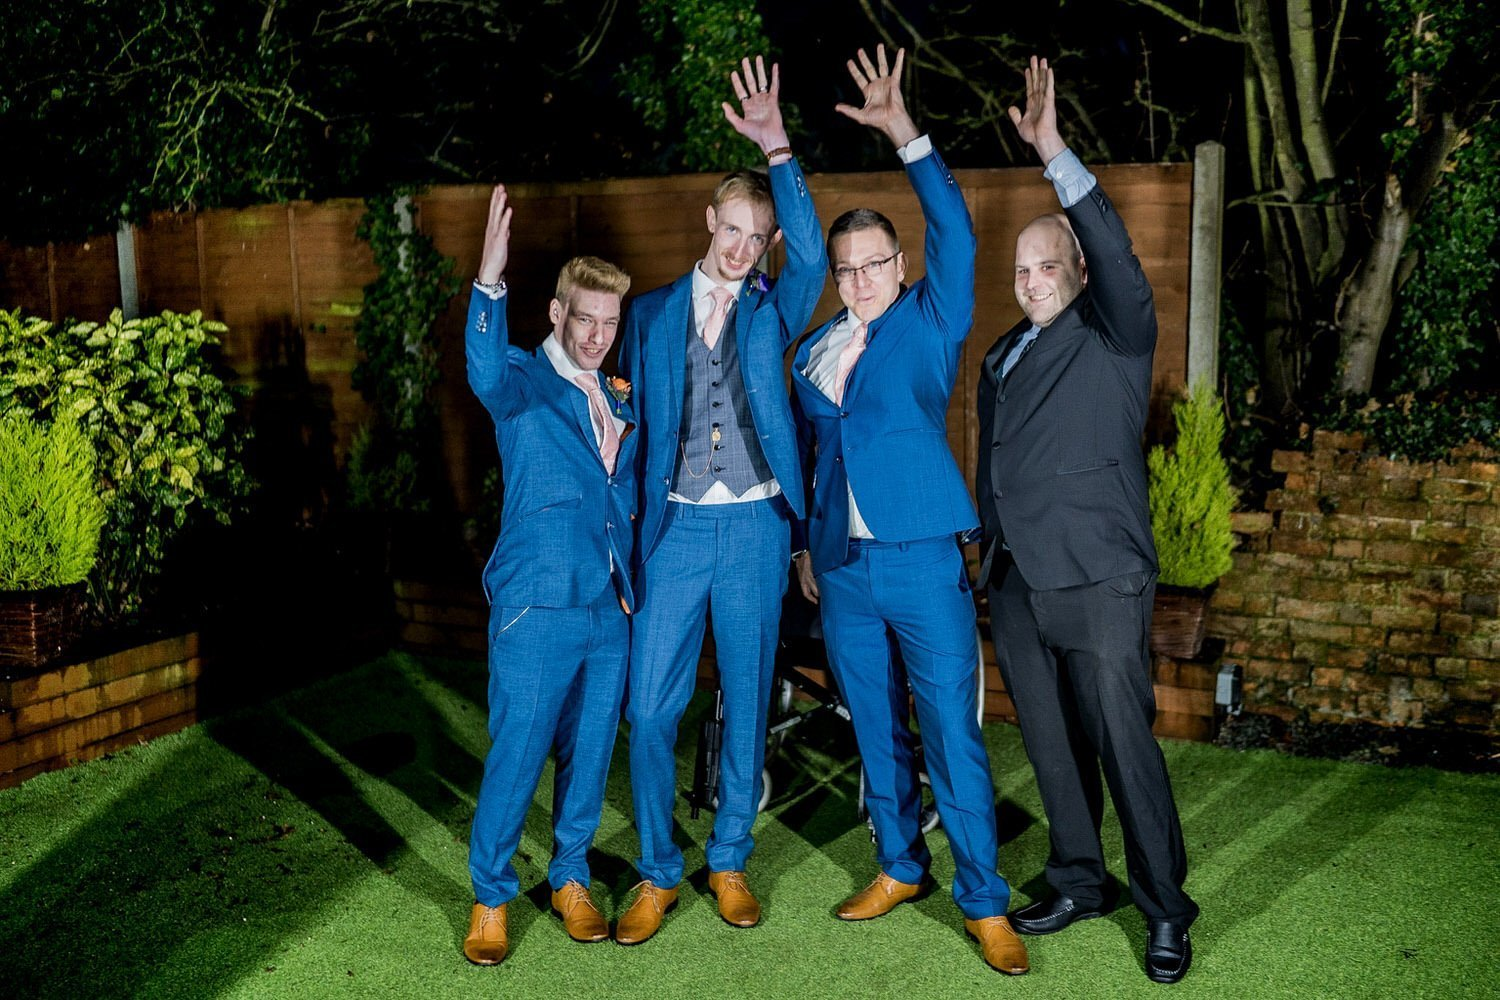 The Barns Hotel Bedford Wooten Weddings Photography groom and ushers throwing their arms up in celebration